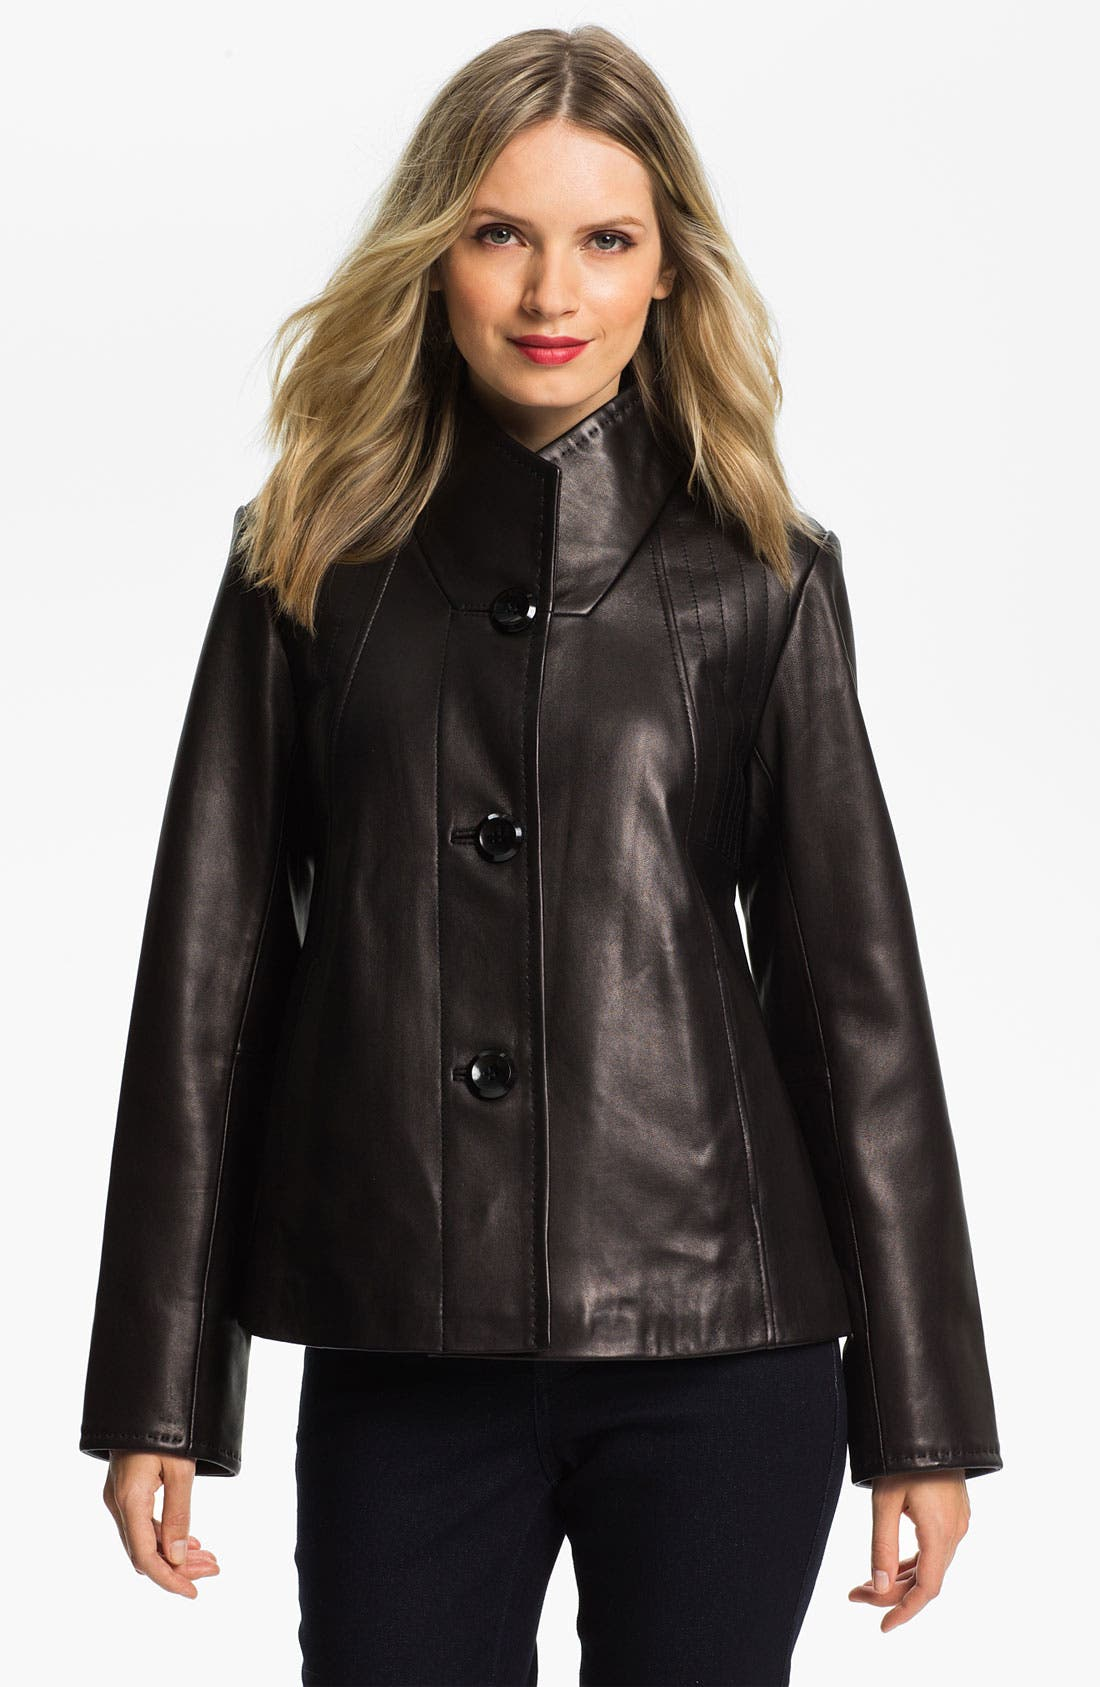 Alternate Image 1 Selected - Ellen Tracy Button Up Leather Jacket (Nordstrom Exclusive)